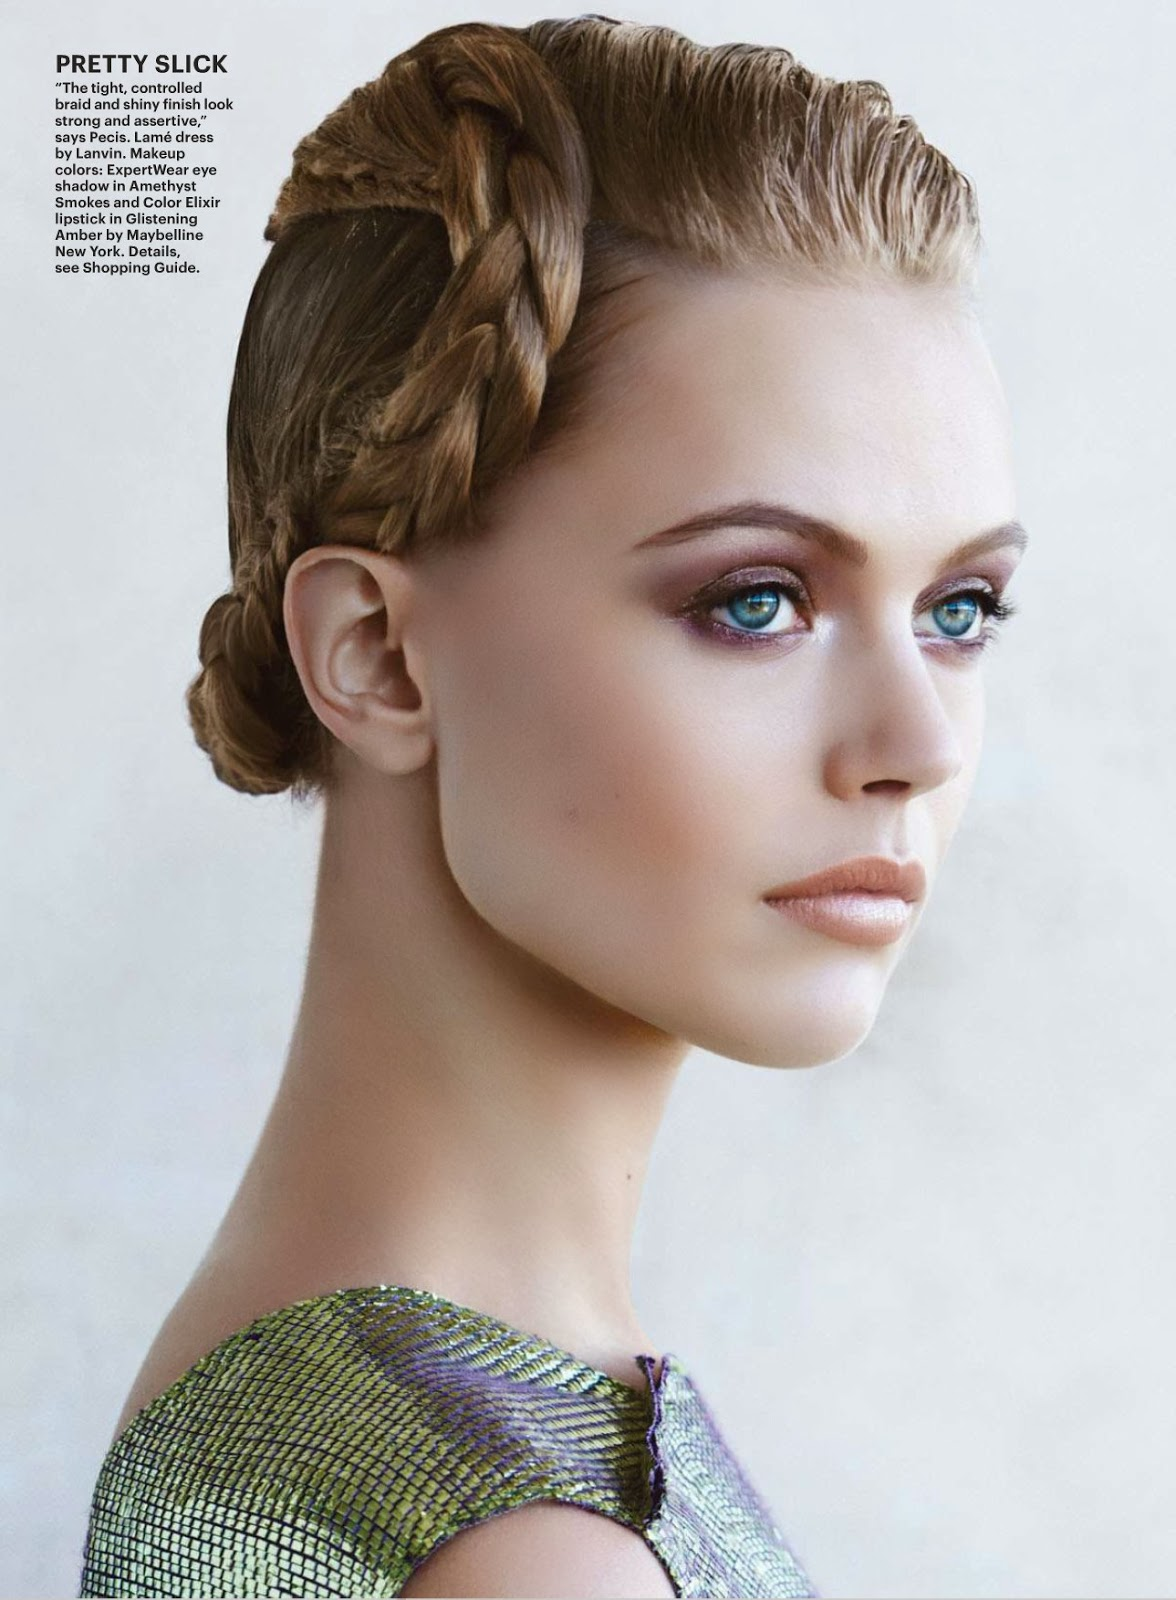 Frida Gustavsson HQ Pictures Allure US Magazine Photoshoot March 2014